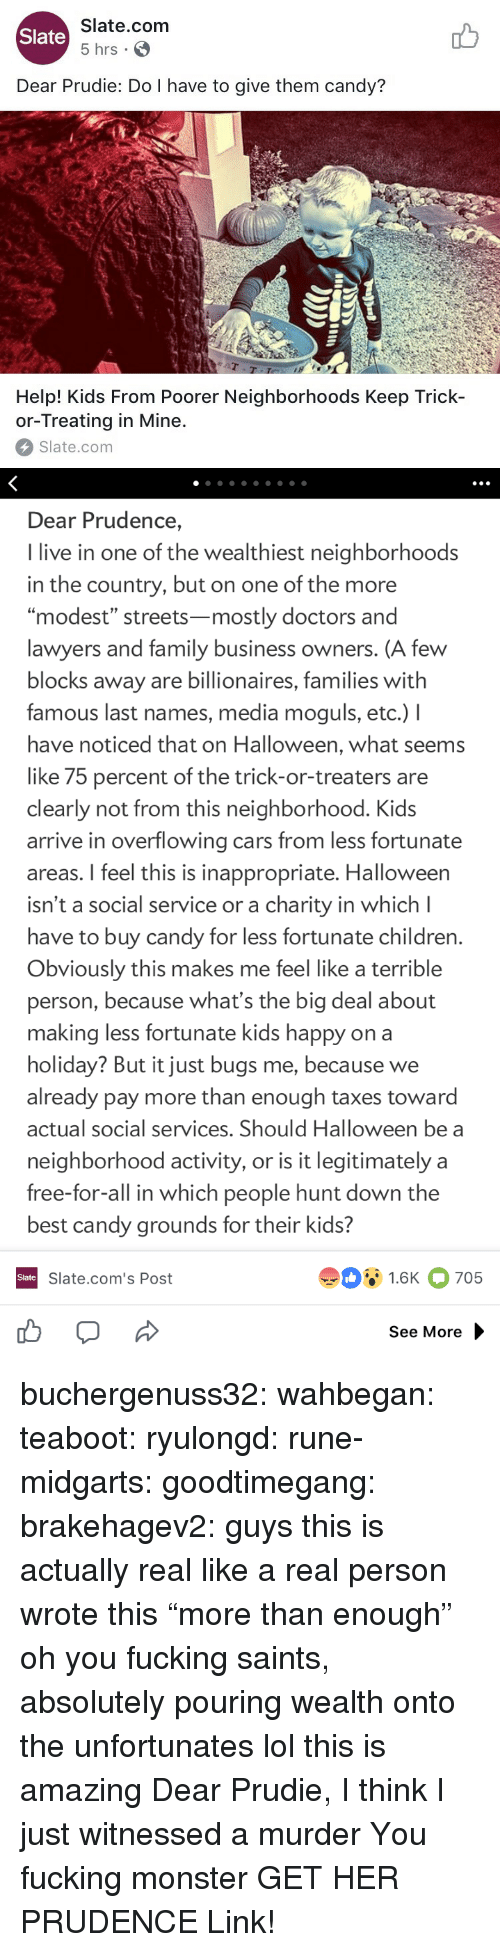 "Candy, Cars, and Children: Slate.com  5 hrs .  Slate  Dear Prudie: Do I have to give them candy?  aT  T-T  Help! Kids From Poorer Neighborhoods Keep Trick-  or-Treating in Mine.  Slate.com   Dear Prudence,  I live in one of the wealthiest neighborhoods  in the country, but on one of the more  ""modest"" streets-mostly doctors and  lawyers and family business owners. (A few  blocks away are billionaires, families with  famous last names, media moguls, etc.) I  have noticed that on Halloween, what seems  like 75 percent of the trick-or-treaters are  clearly not from this neighborhood. Kids  arrive in overflowing cars from less fortunate  areas. I feel this is inappropriate. Halloween  isn't a social service or a charity in which l  have to buy candy for less fortunate children  Obviously this makes me feel like a terrible  person, because what's the big deal about  making less fortunate kids happy on a  holiday? But it just bugs me, because we  already pay more than enough taxes toward  actual social services. Should Halloween be a  neighborhood activity, or is it legitimately a  free-for-all in which people hunt down the  best candy grounds for their kids?  91.6K 705  Slate  Slate.com's Post  See More buchergenuss32:  wahbegan: teaboot:  ryulongd:  rune-midgarts:  goodtimegang:  brakehagev2:  guys this is actually real like a real person wrote this  ""more than enough"" oh you fucking saints, absolutely pouring wealth onto the unfortunates   lol this is amazing   Dear Prudie, I think I just witnessed a murder  You fucking monster  GET HER PRUDENCE  Link!"